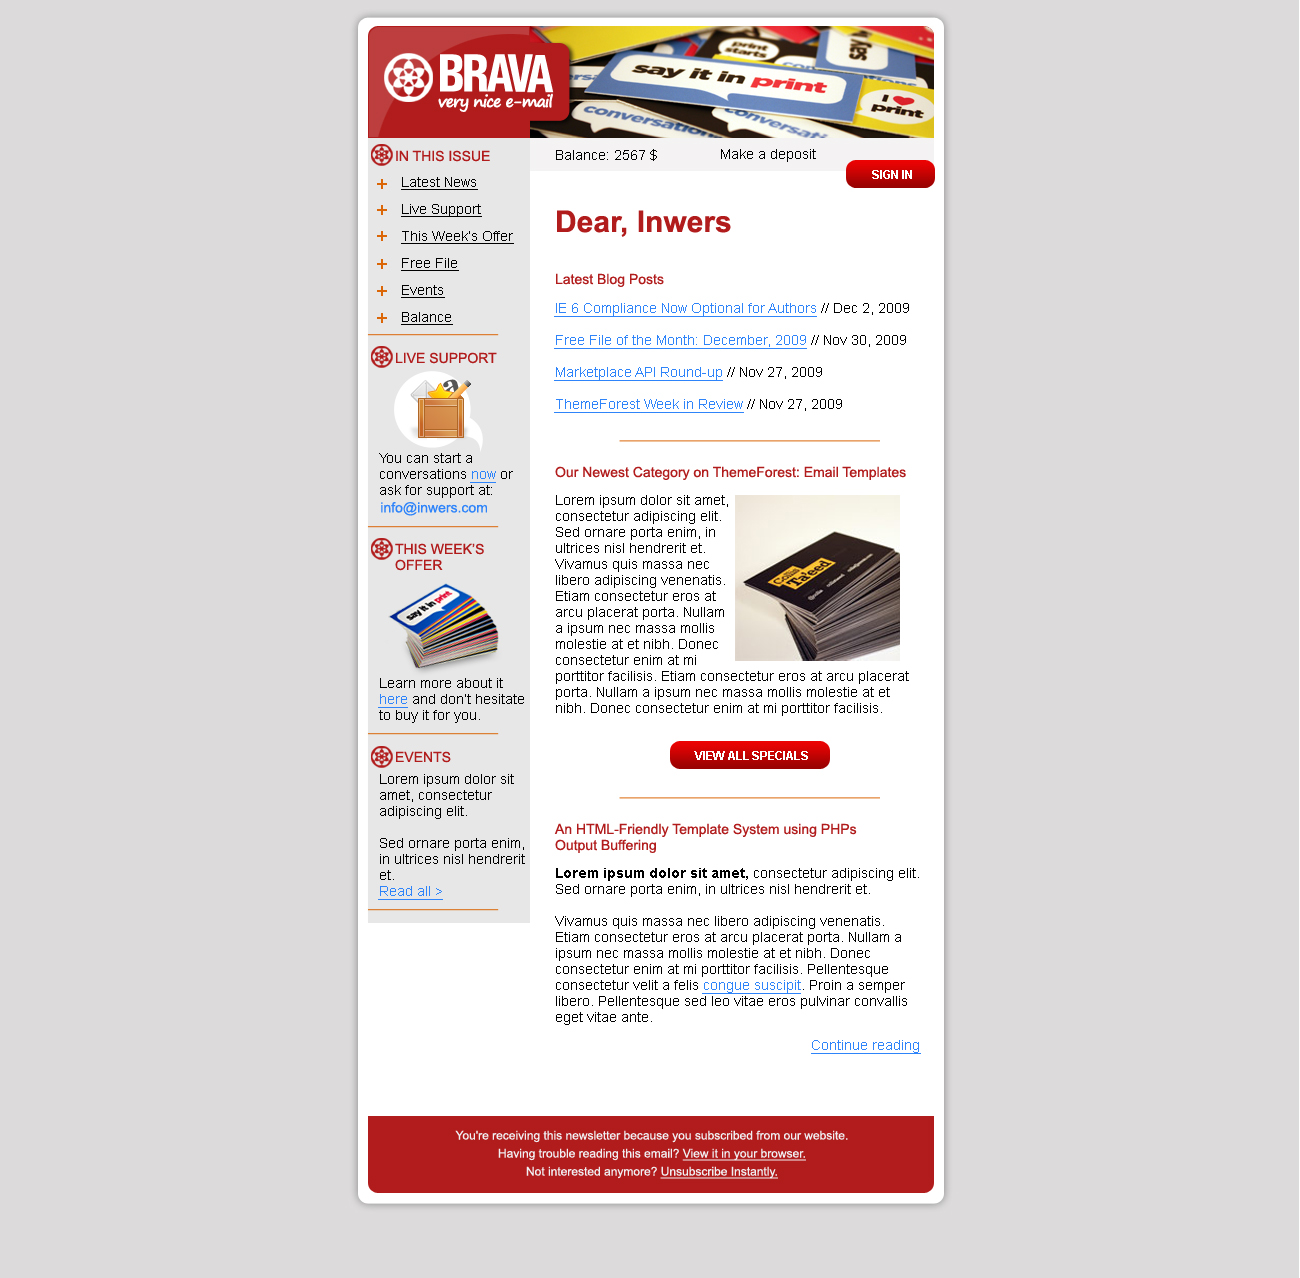 BRAVA - a corporate nice e-mail - Inwers - Brava Red